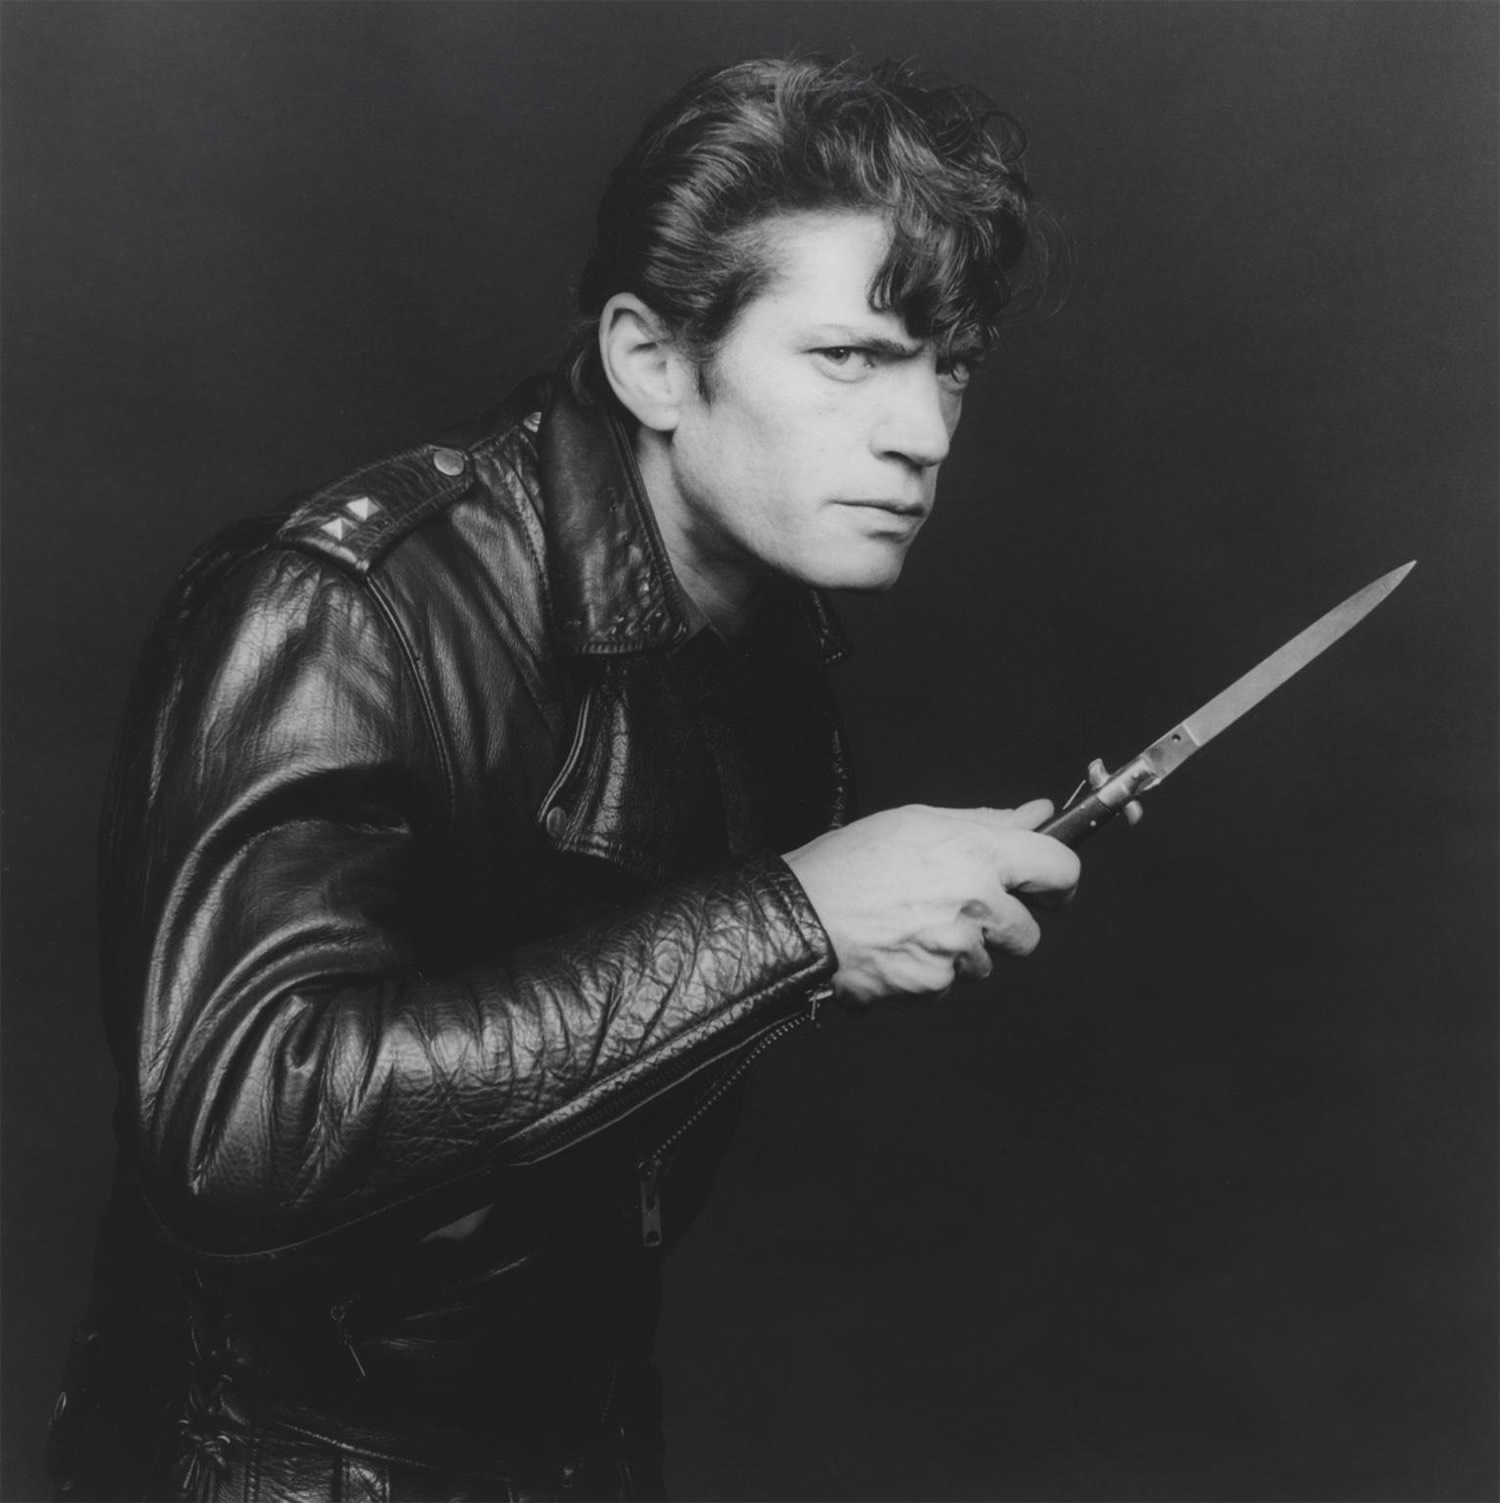 self-portrait, leather jacket and knife